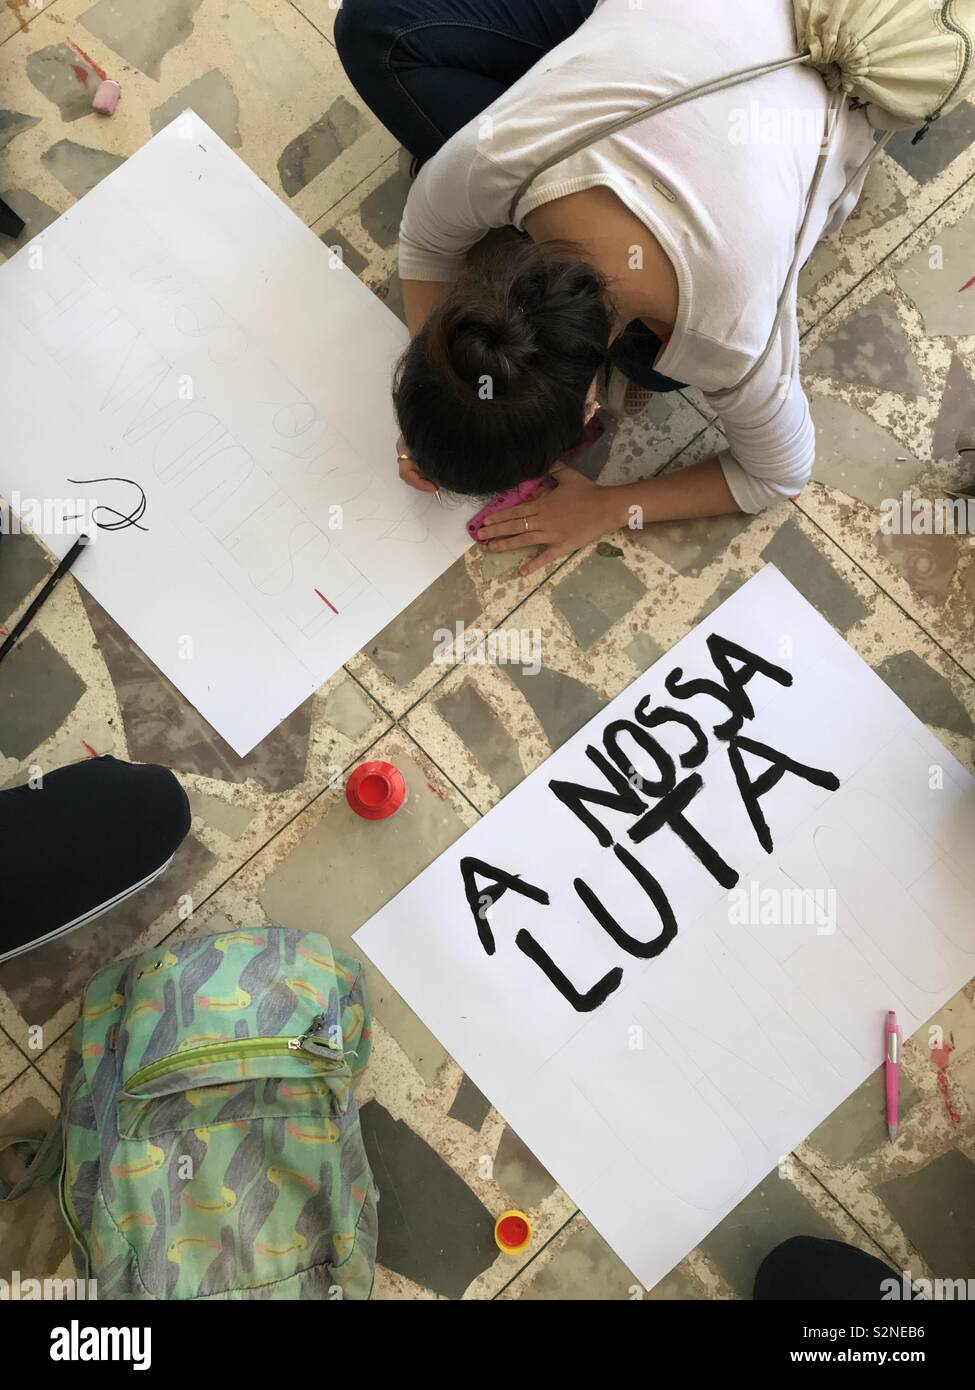 Girls making protest posters in Brazil - Stock Image